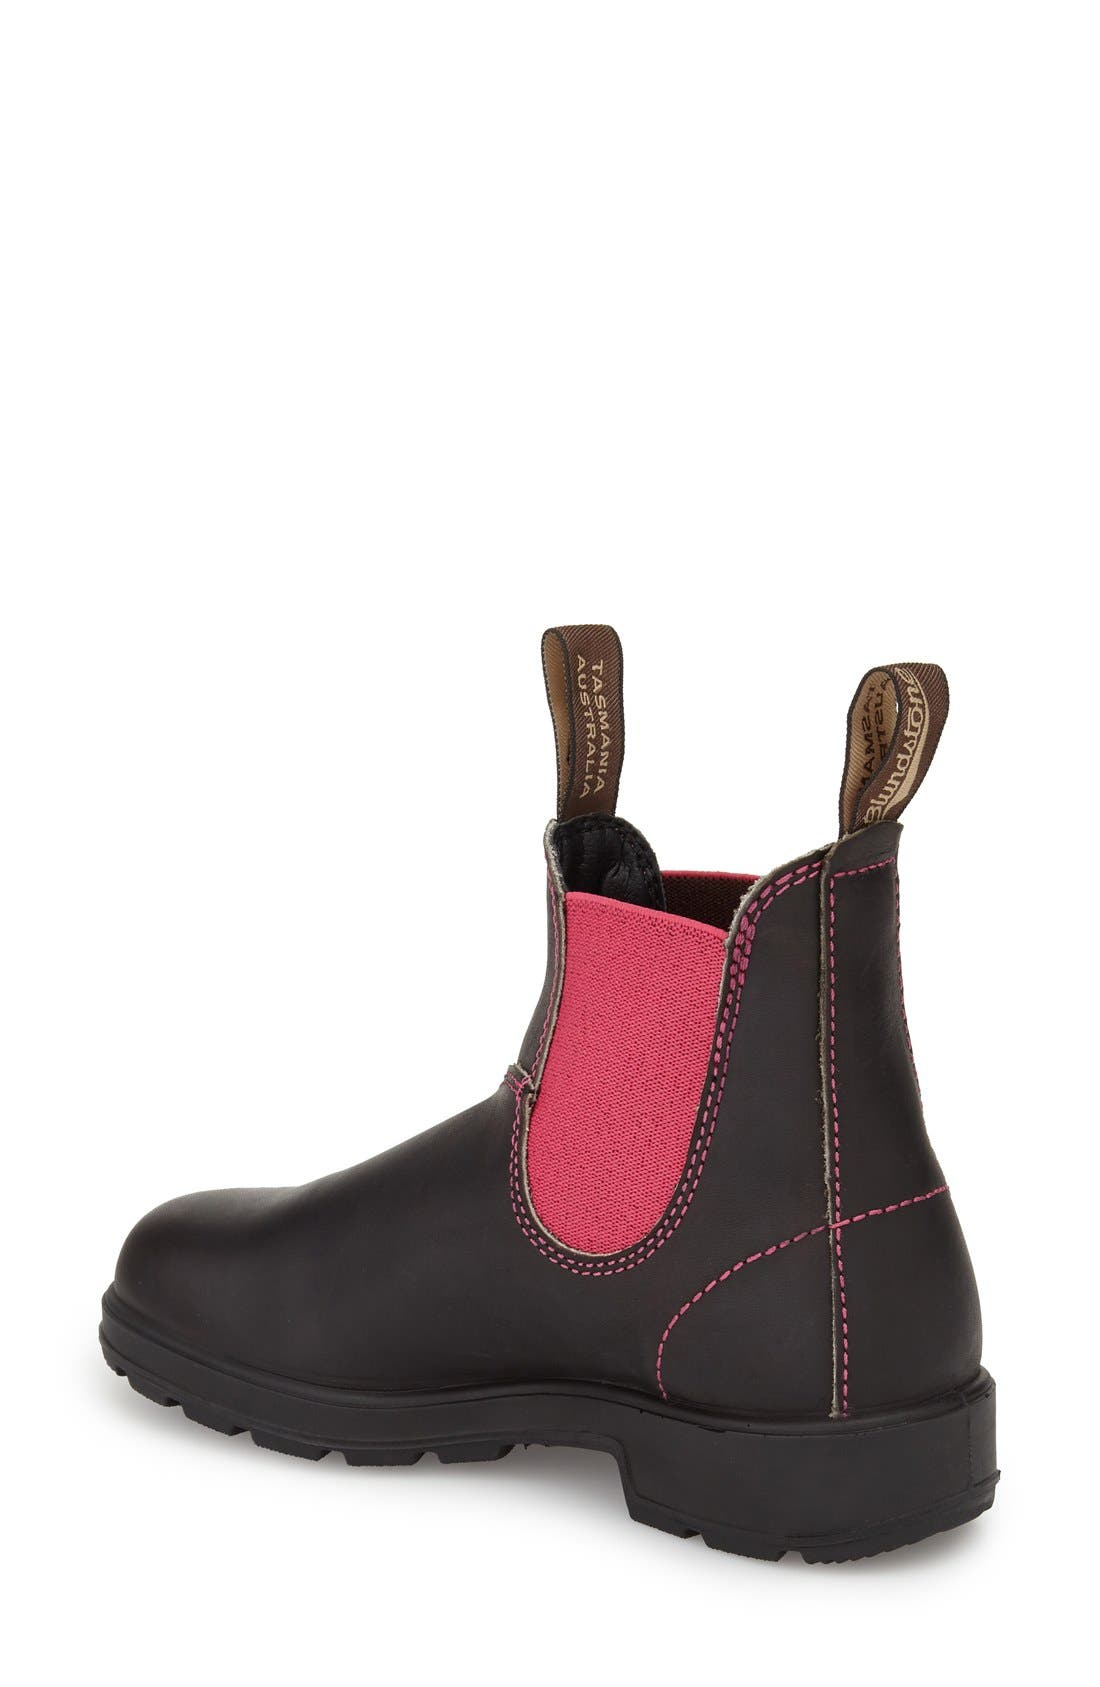 Footwear 'Original - 500 Series' Water Resistant Chelsea Boot,                             Alternate thumbnail 2, color,                             Stout Brown/ Pink Leather